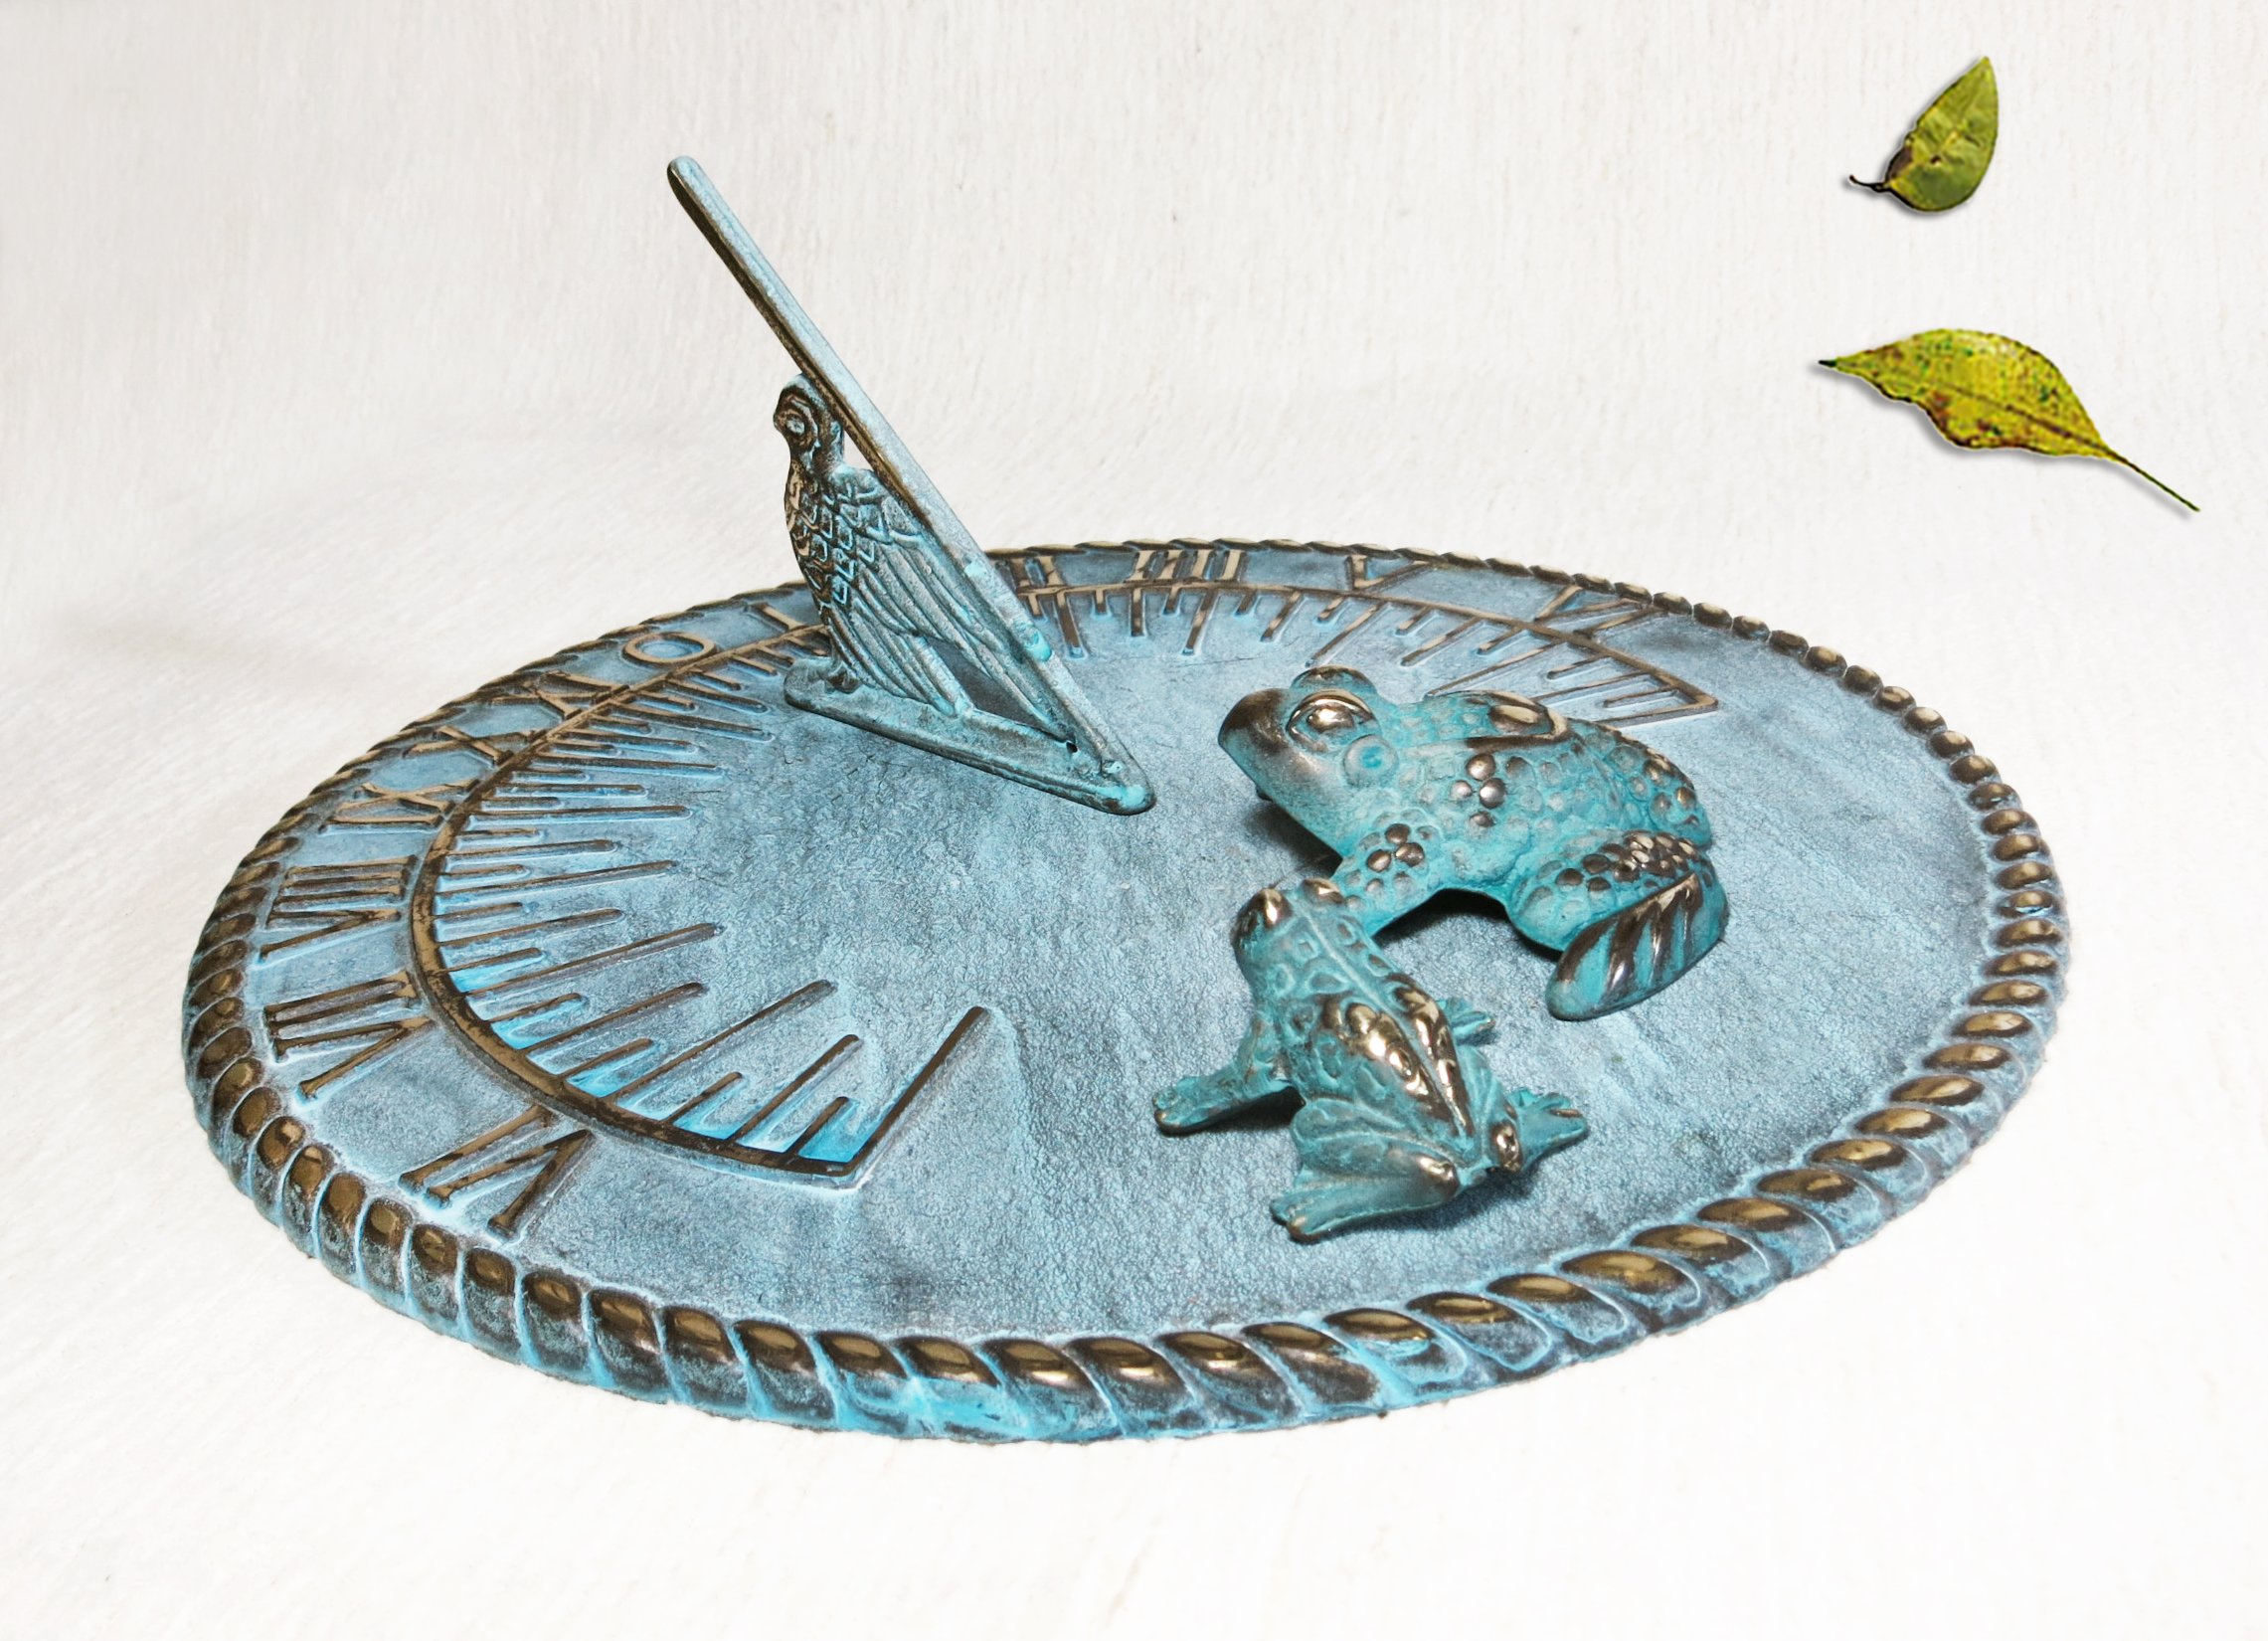 Brass Decorative Sundial 10'' Inches Wide - With 2 Frogs